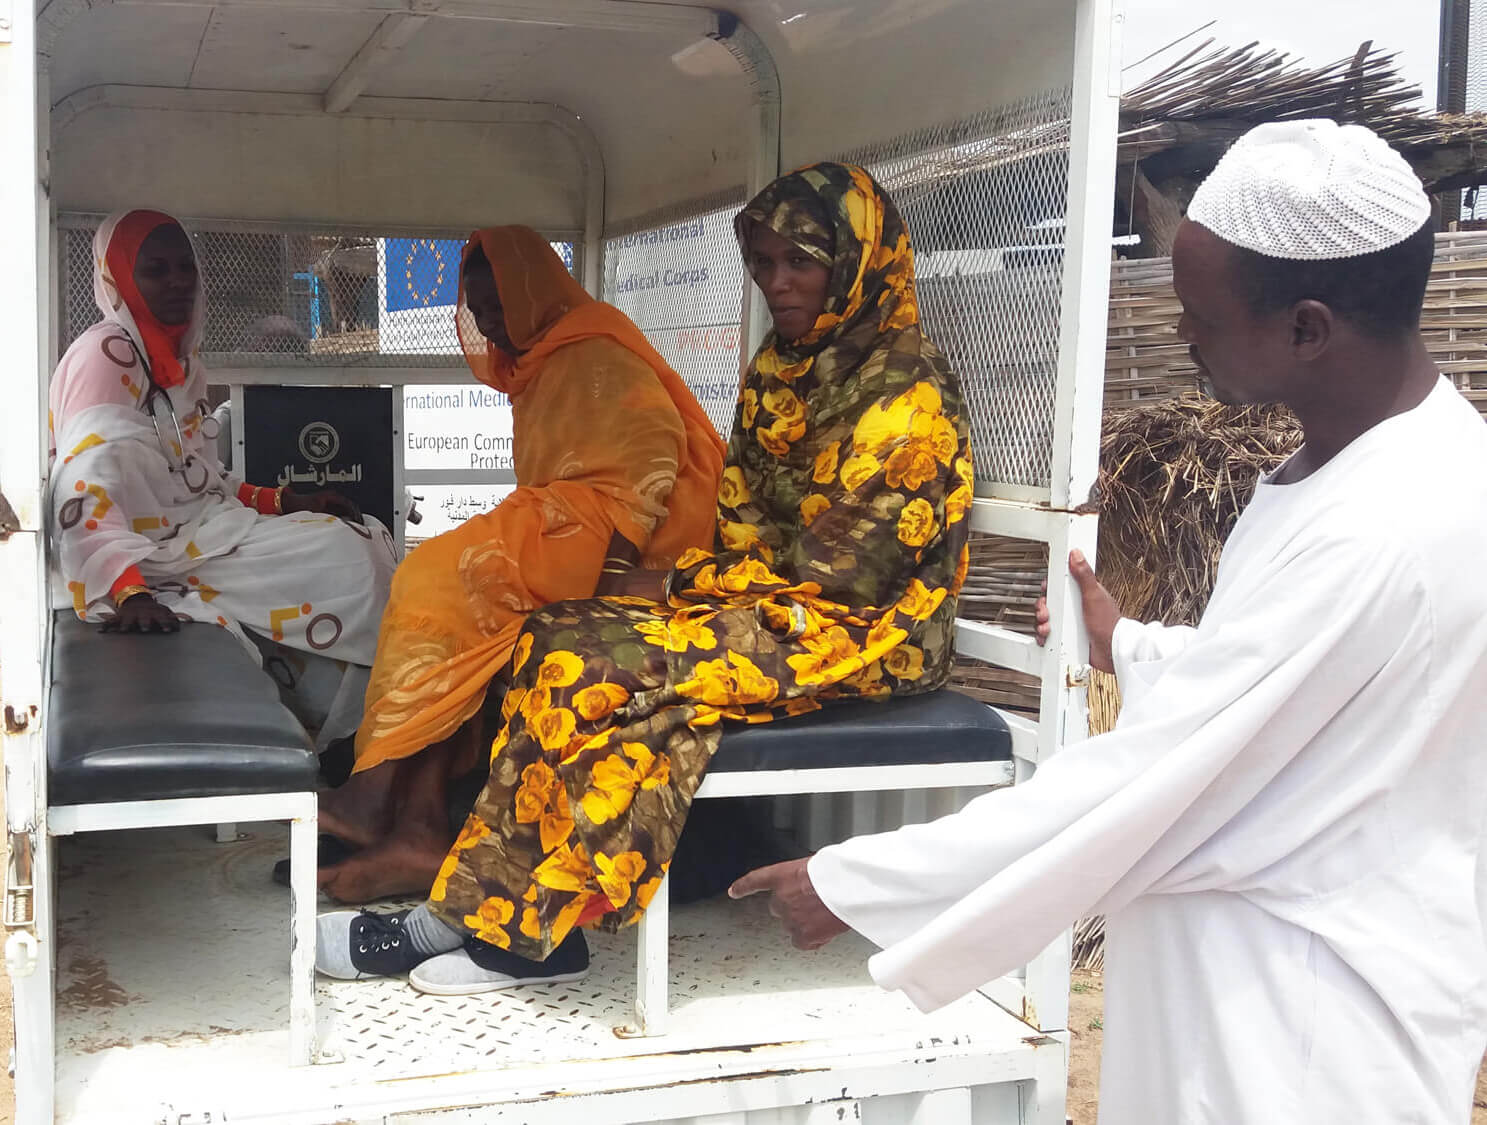 Darfur_7.2019_Using_tri_cycle_ambulance